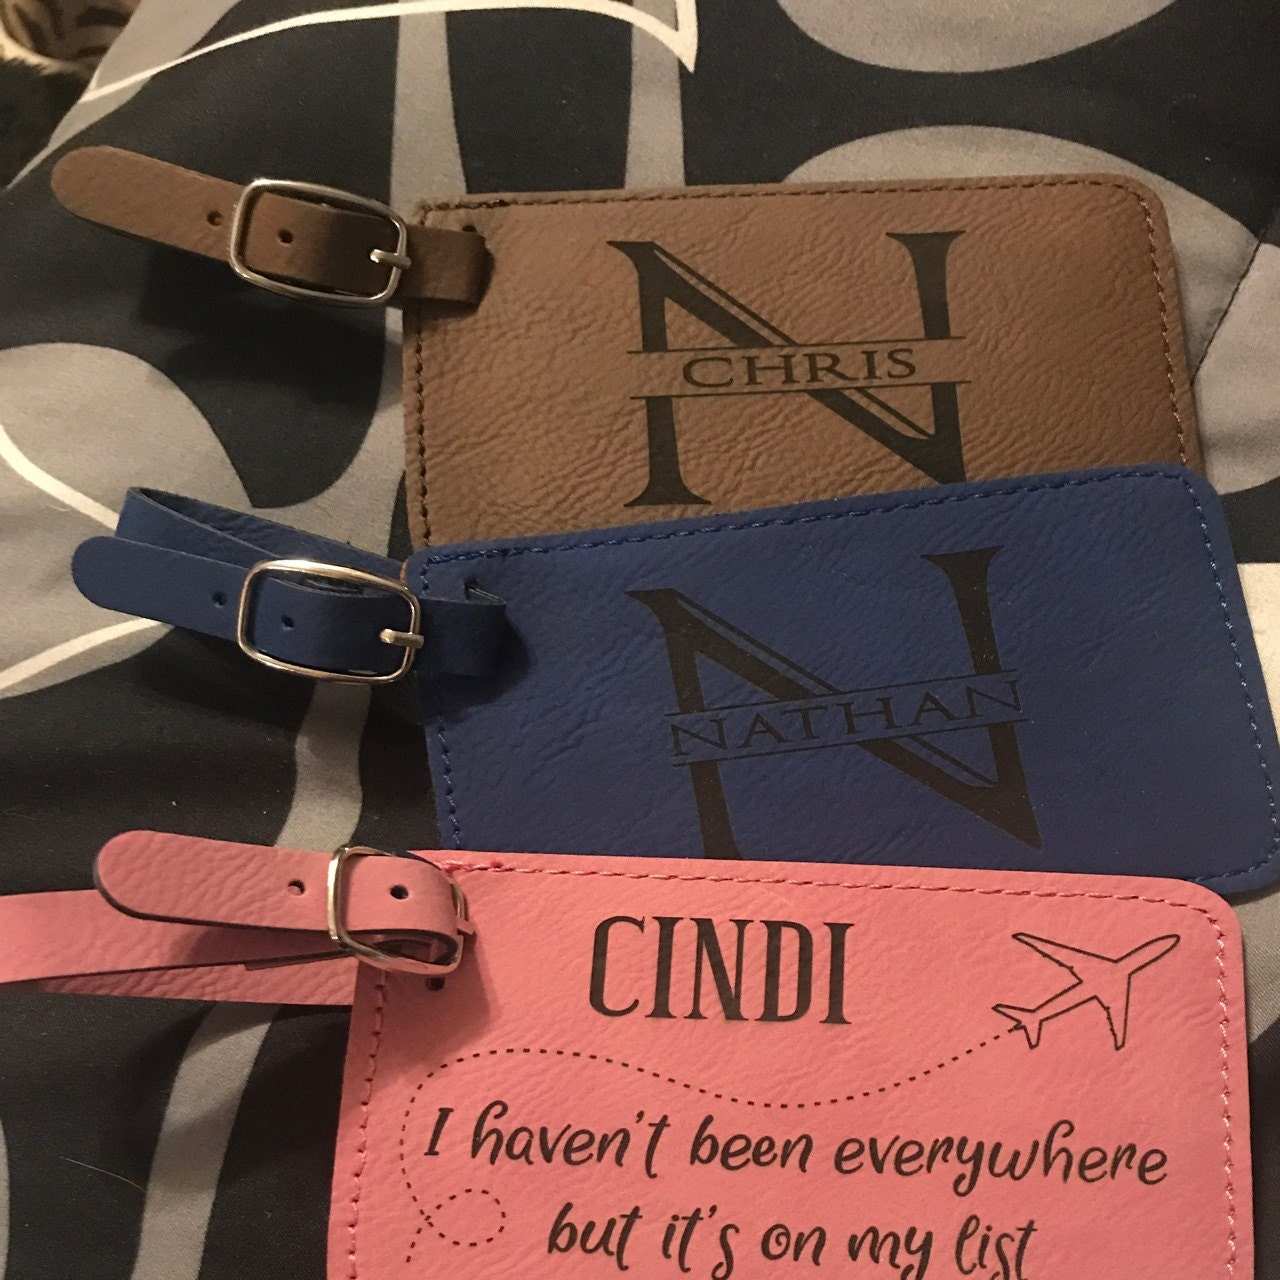 Jessica Nagel added a photo of their purchase